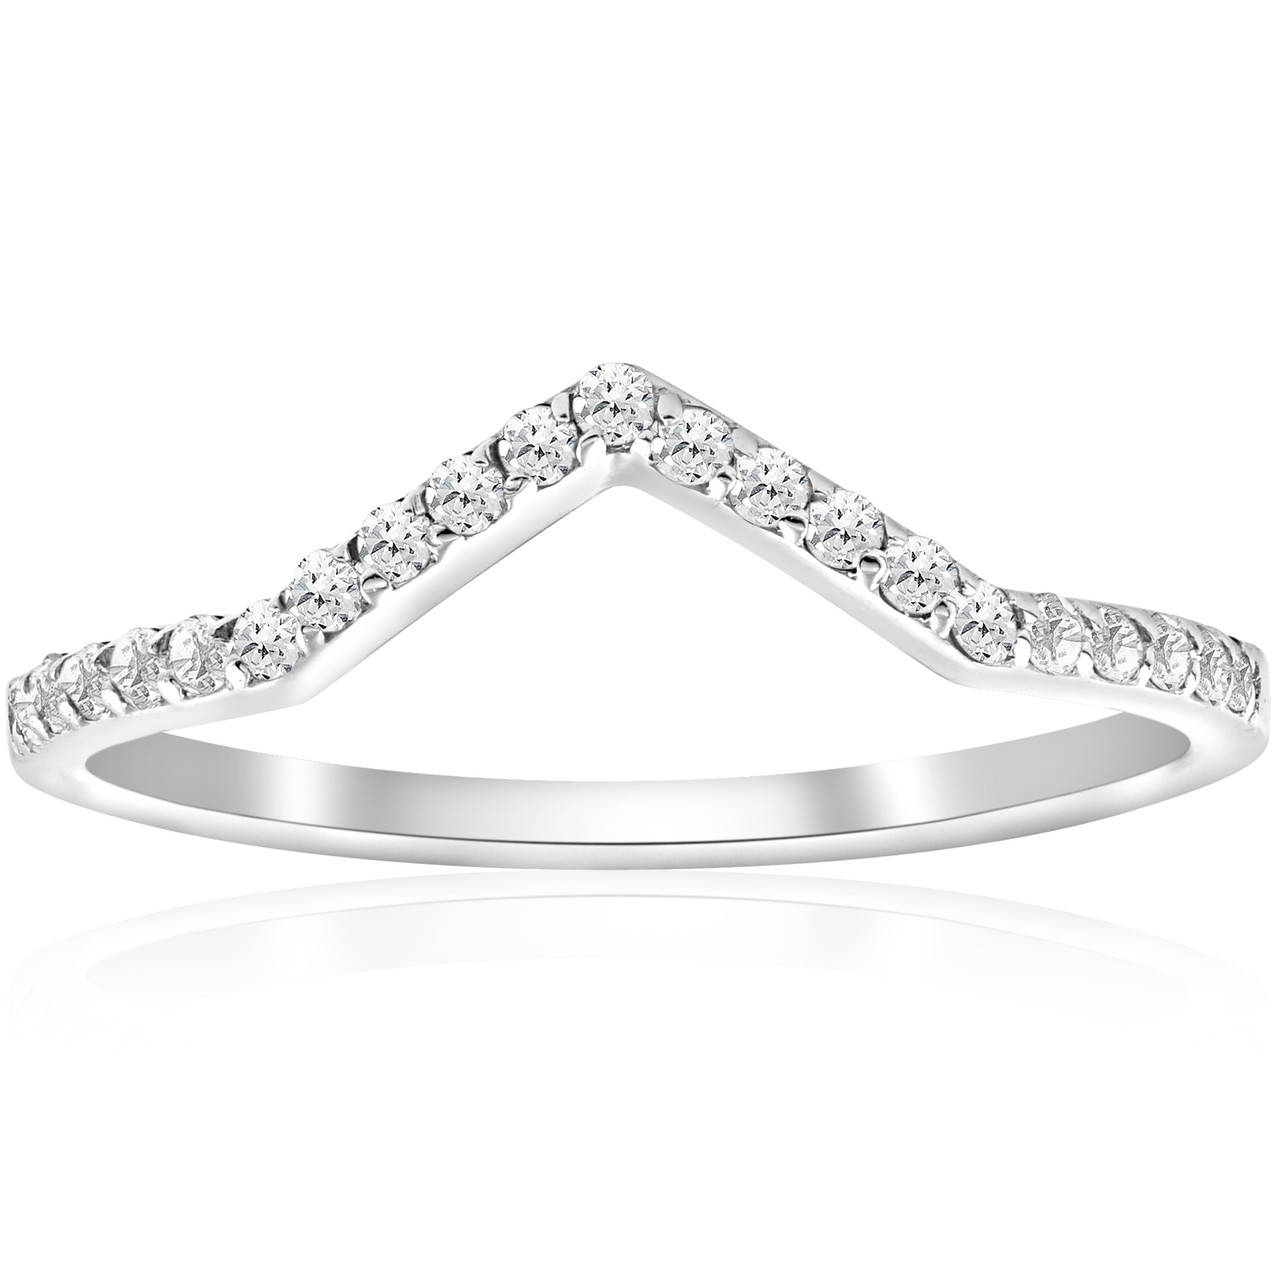 boldly white gold band bands fashion rings diamond round ring princess